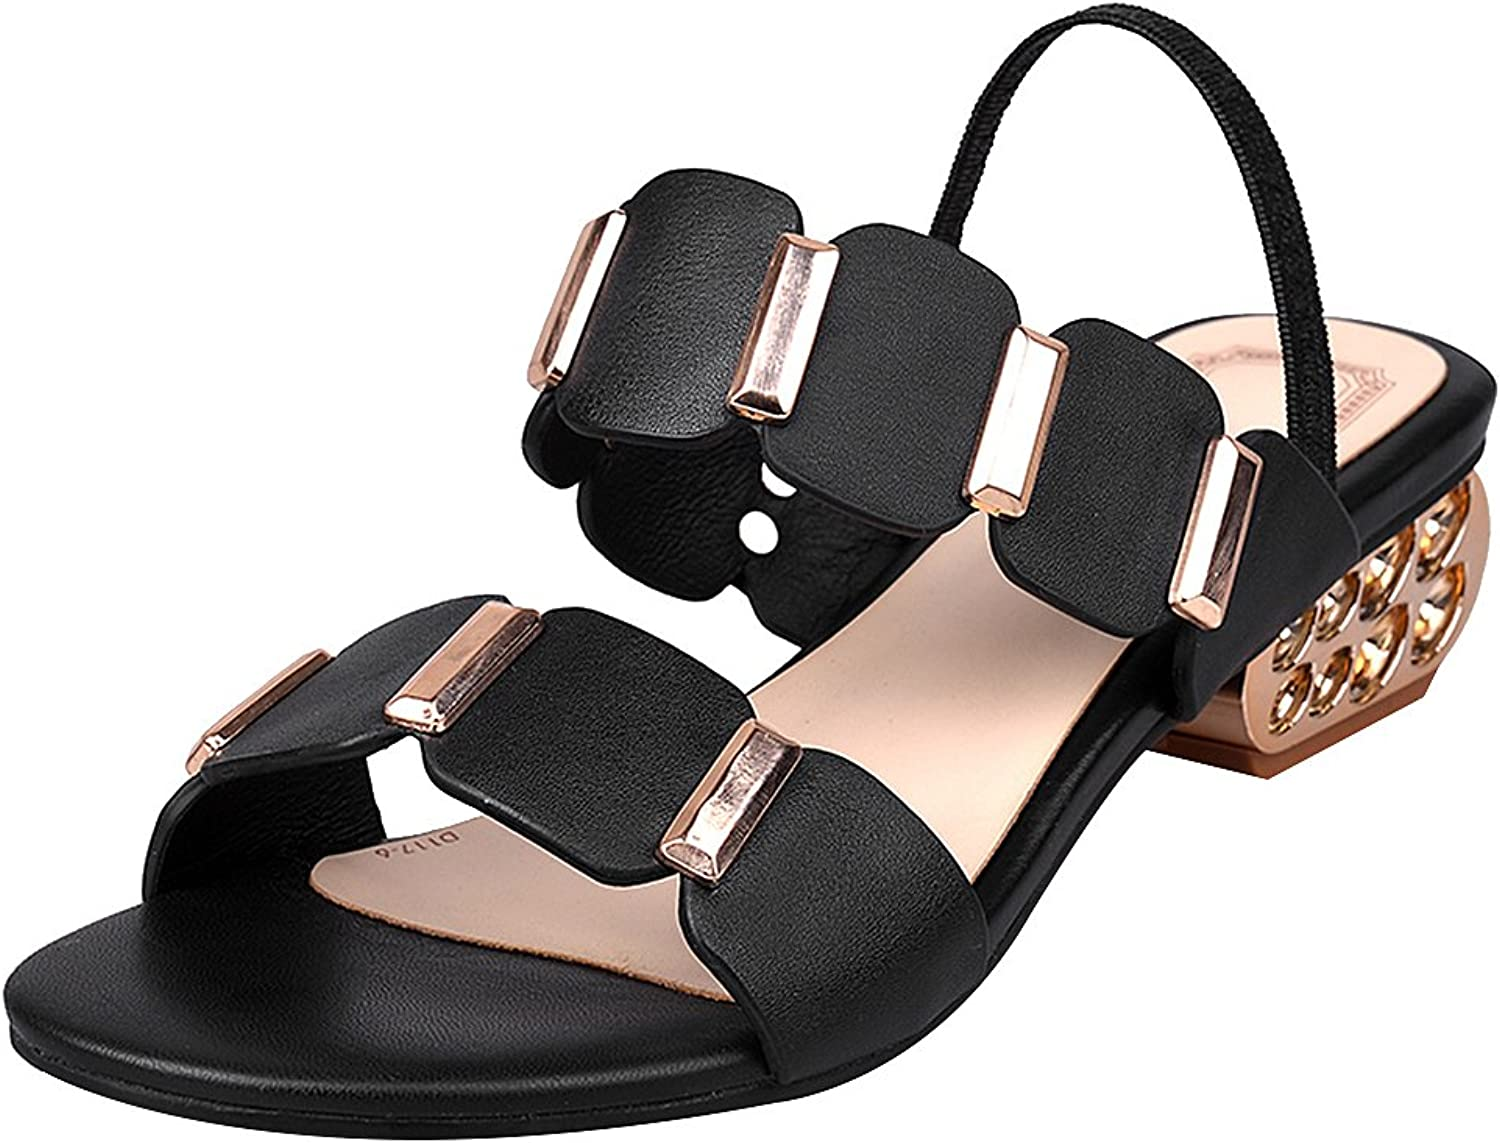 Rismart Women's Ankle Strap Summer Open Toe Leather Stylish Heeled Sandals shoes